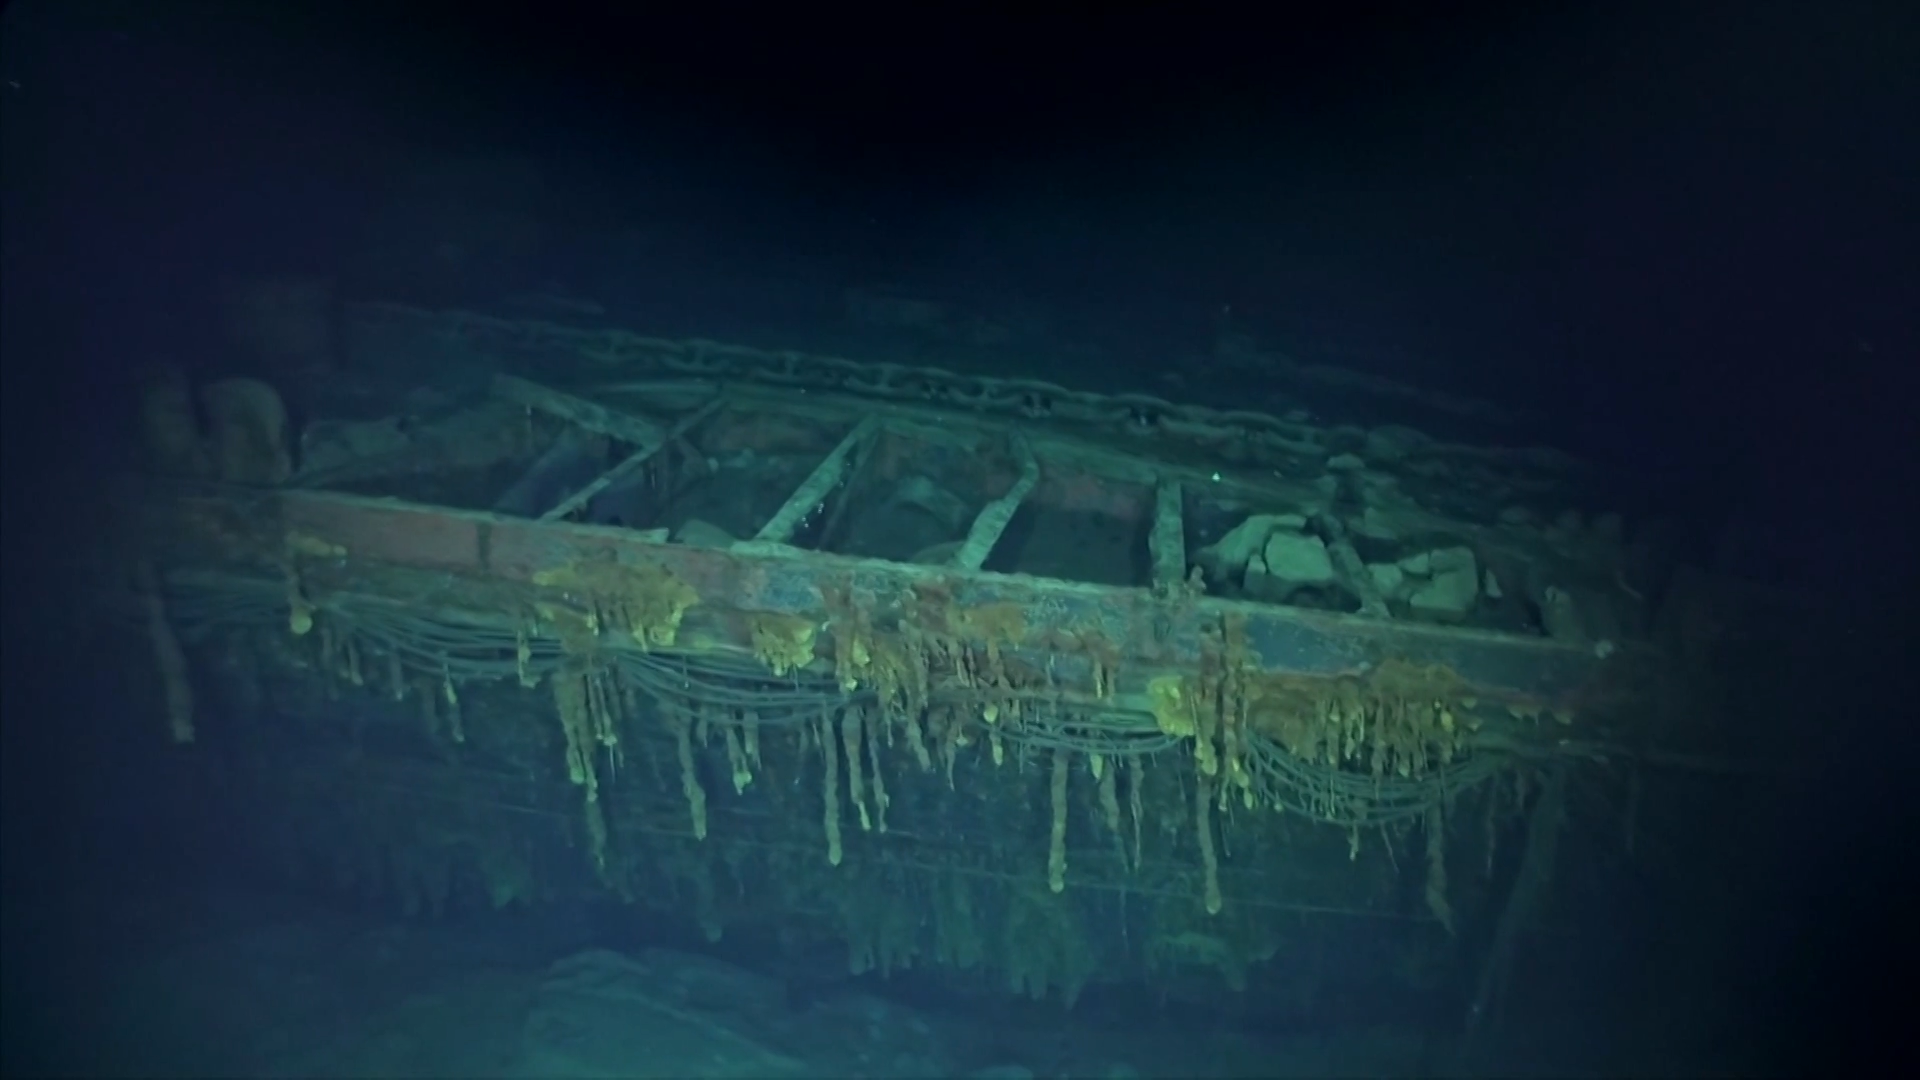 Sunken World War II Era Japanese Ship Discovered in Pacific Ocean